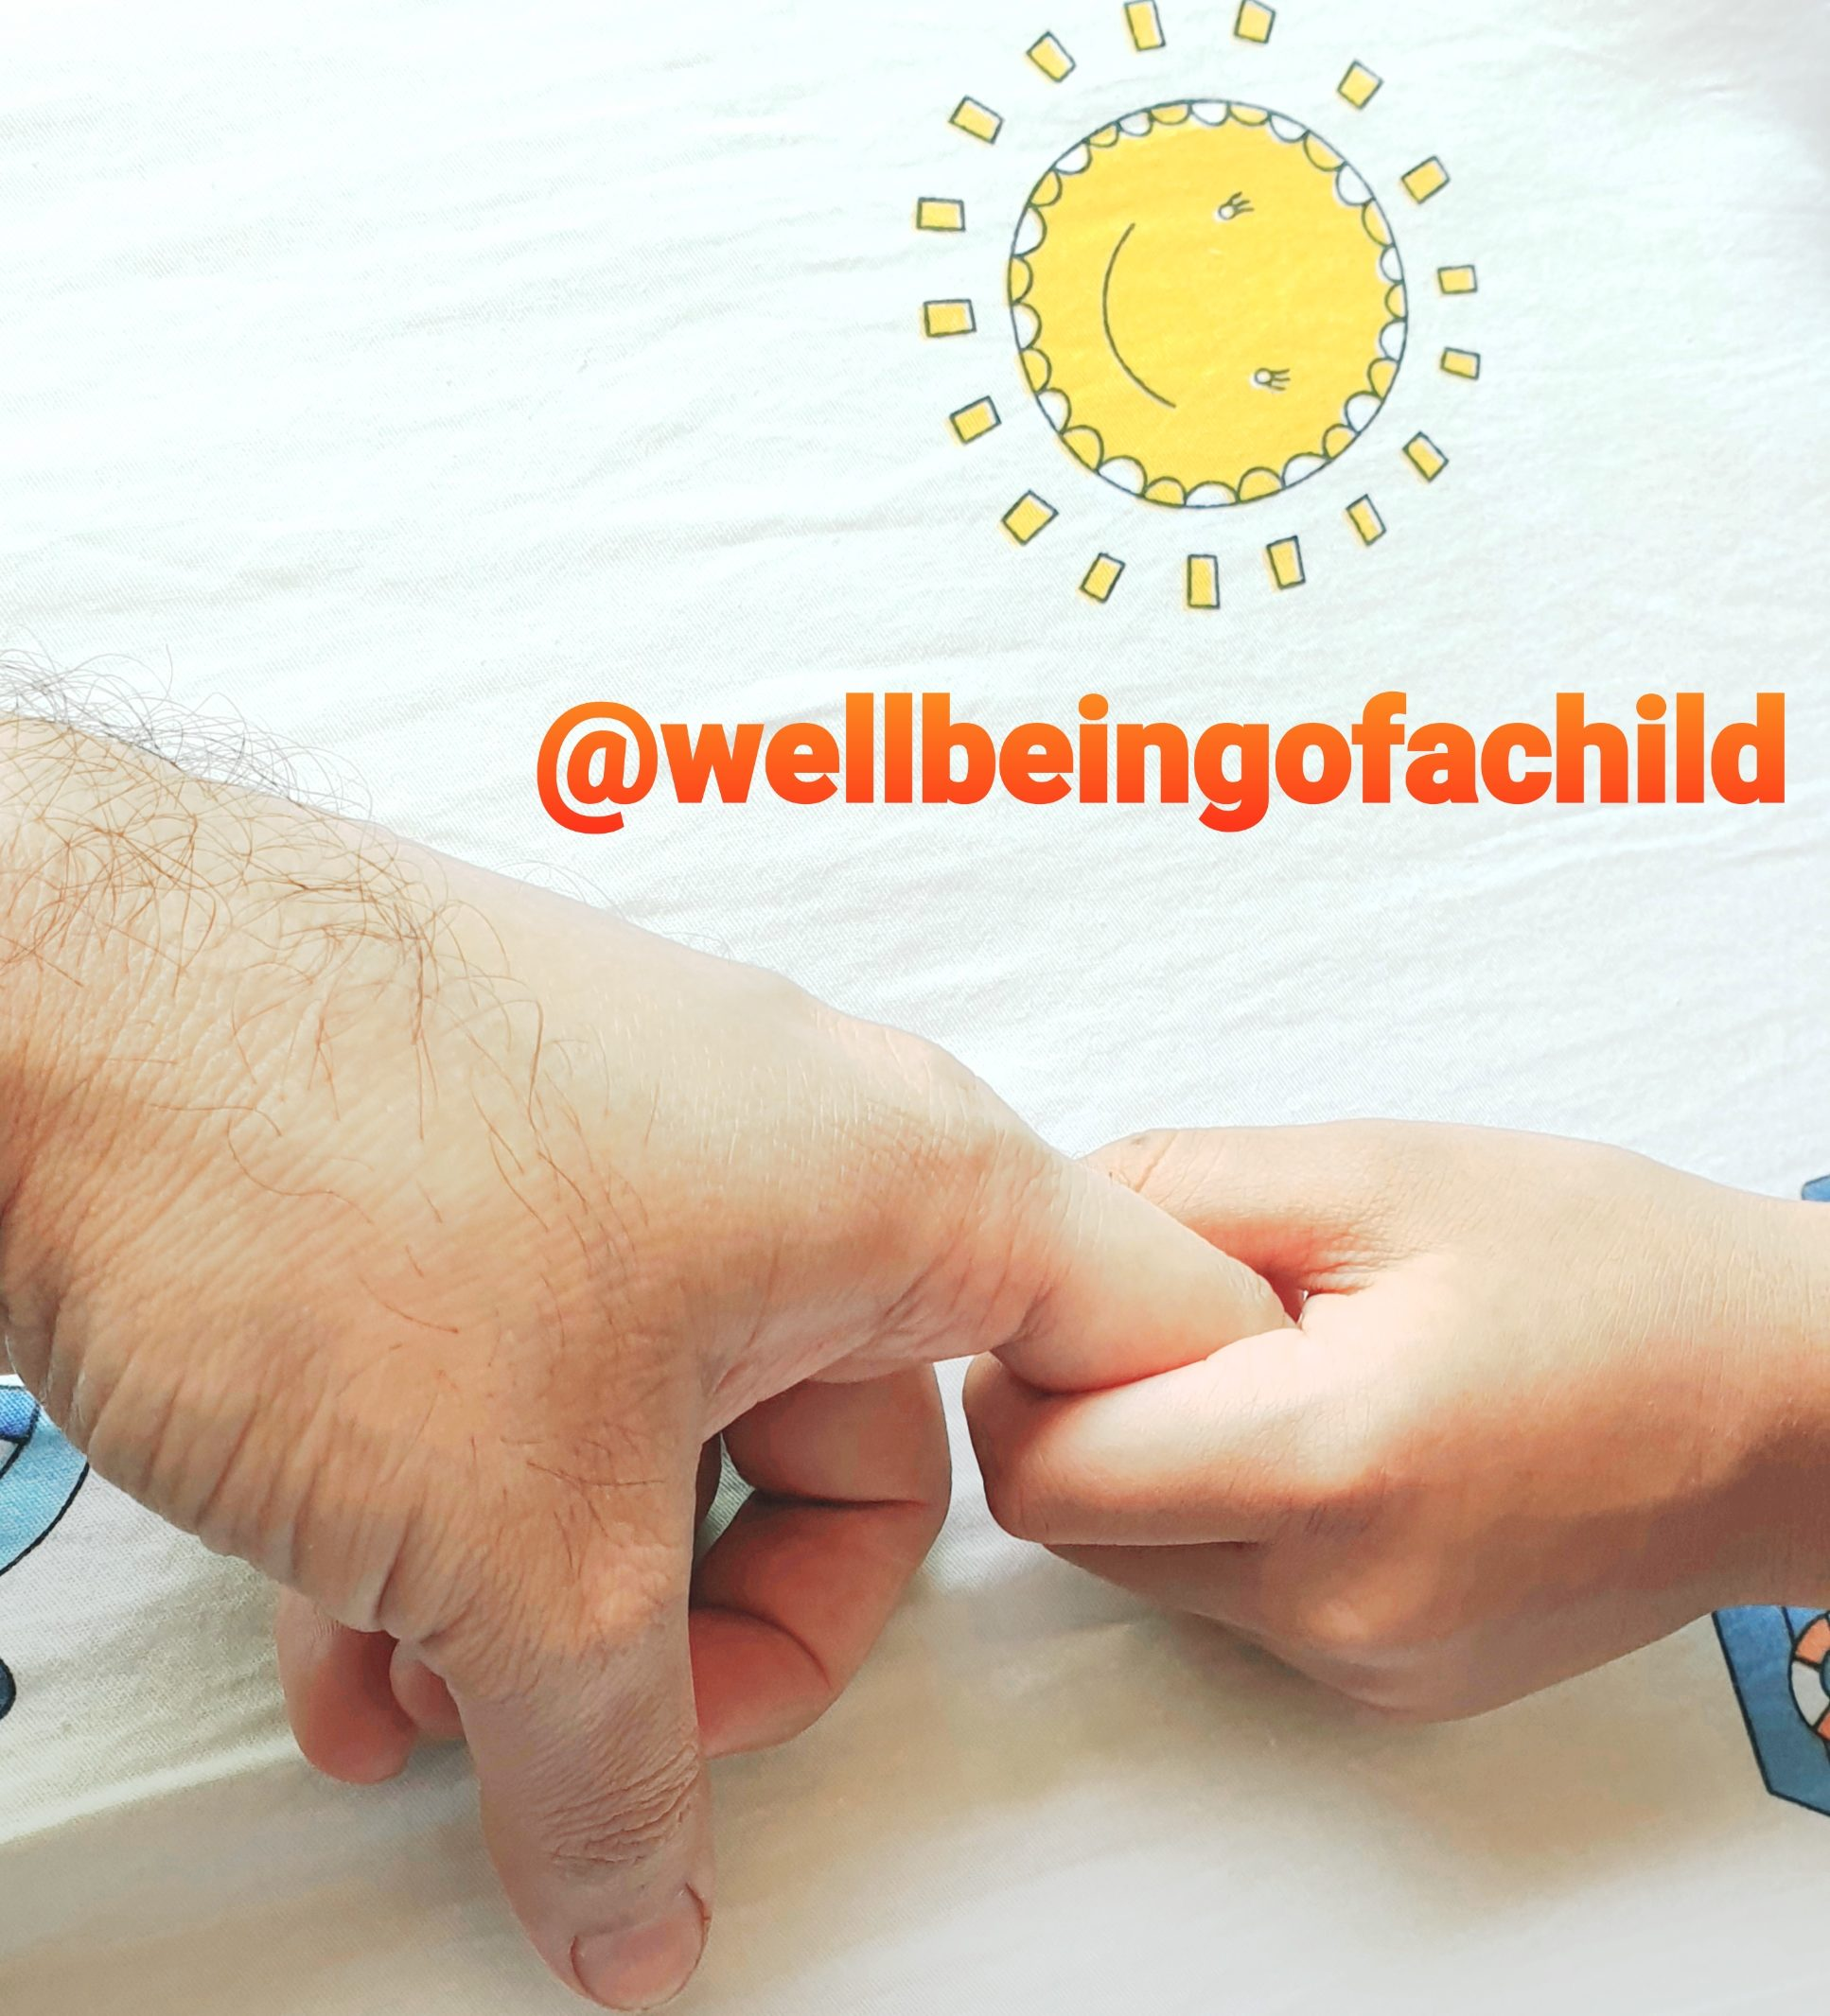 Well Being Of A Child (@wellbeingofachild)